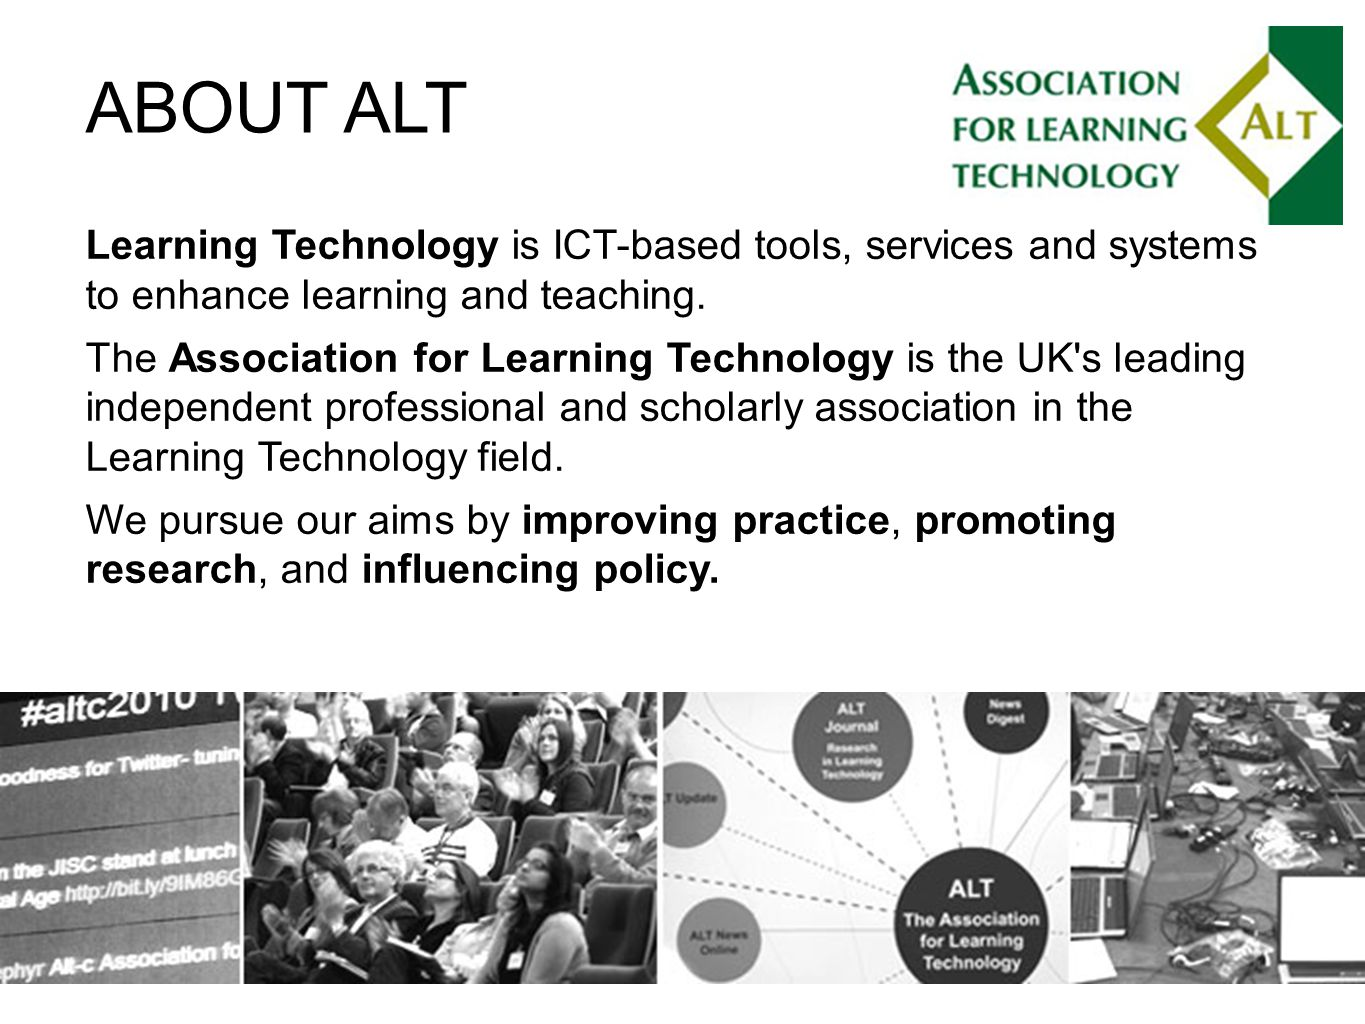 Learning Technology is ICT-based tools, services and systems to enhance learning and teaching.